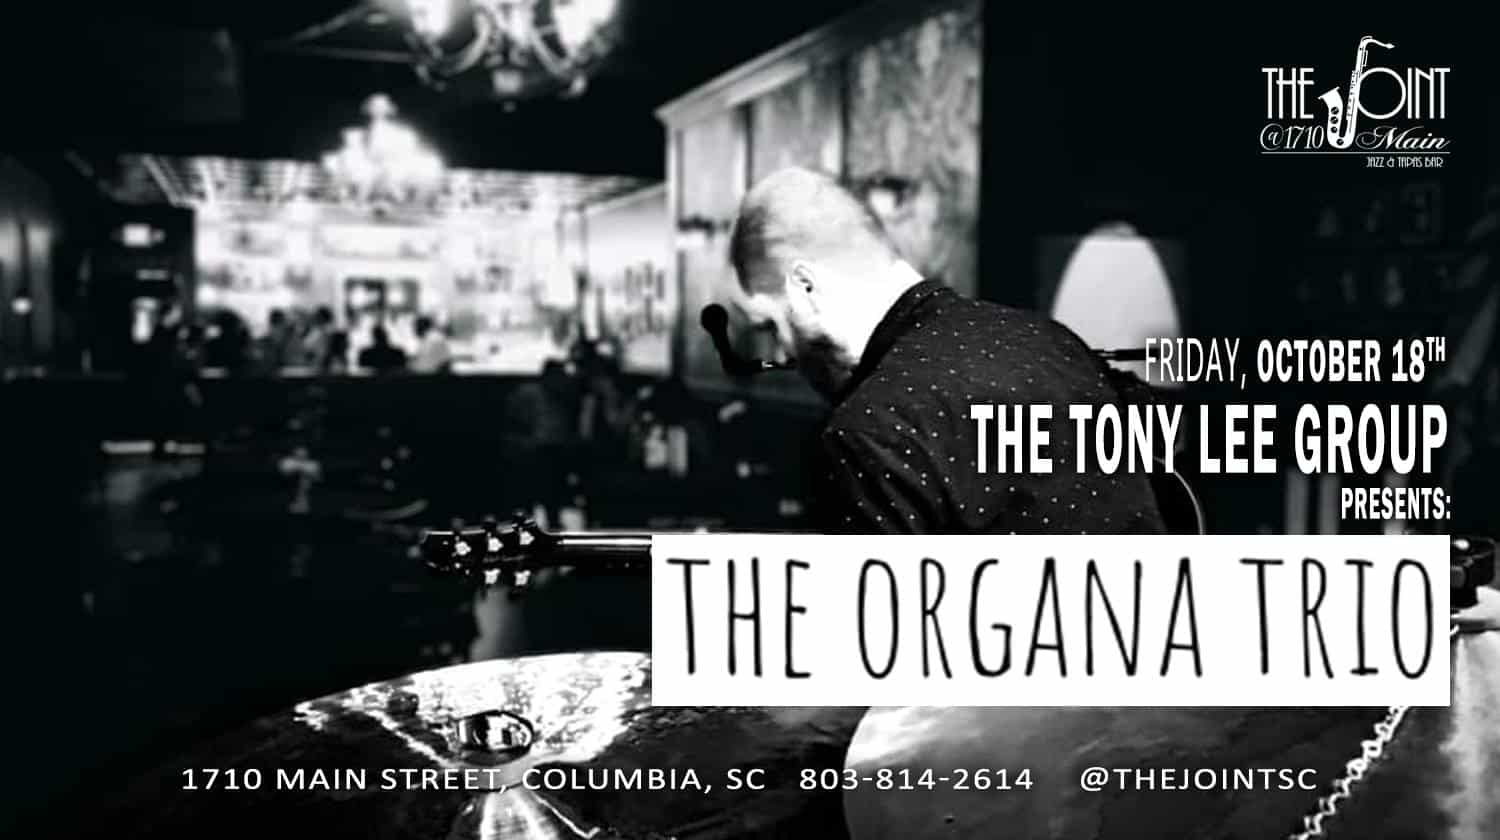 The Tony Lee Group presents The Organa Trio